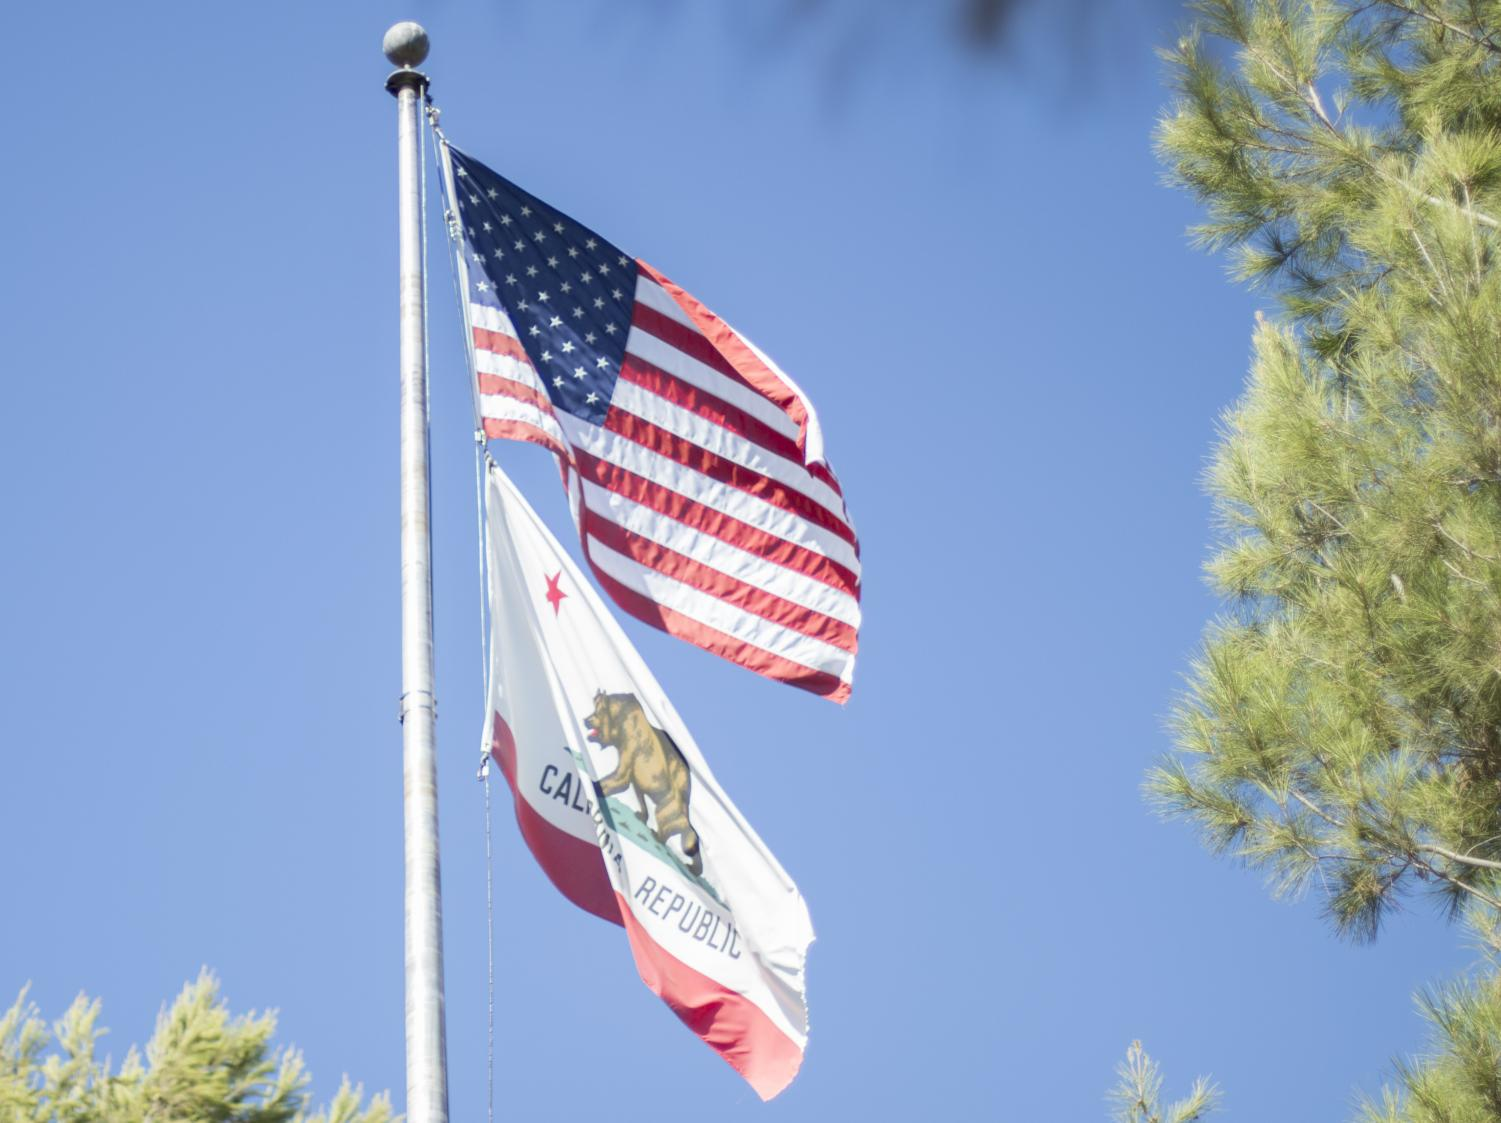 The American flag flew high on Wednesday, Sept. 18 on the Moorpark College campus. The flag pole is located at the North-West corner of Fountain Hall. Photo credit: Evan Reinhardt